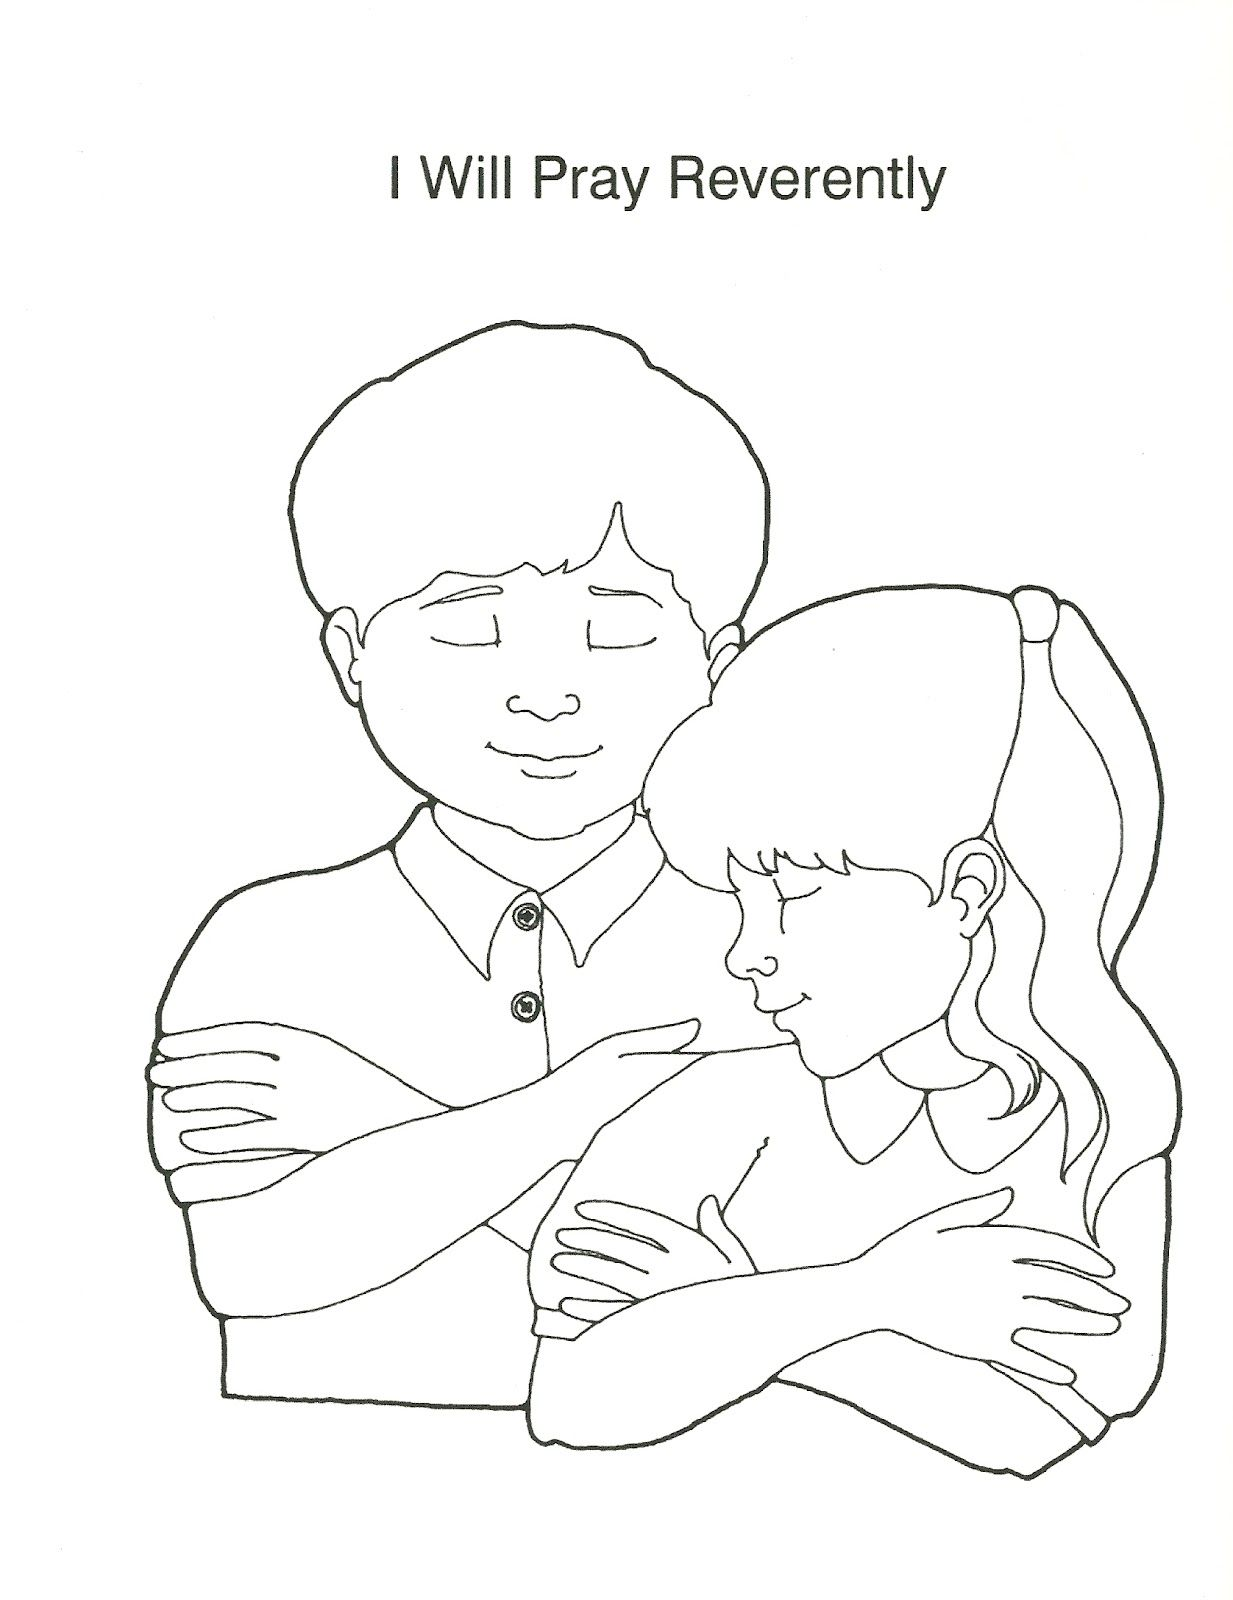 Primary 2 Manual Lesson 10 I Can Speak With Heavenly Father In Prayer Journal Page Print It Here Lds Coloring Pages Children Praying Coloring Pages